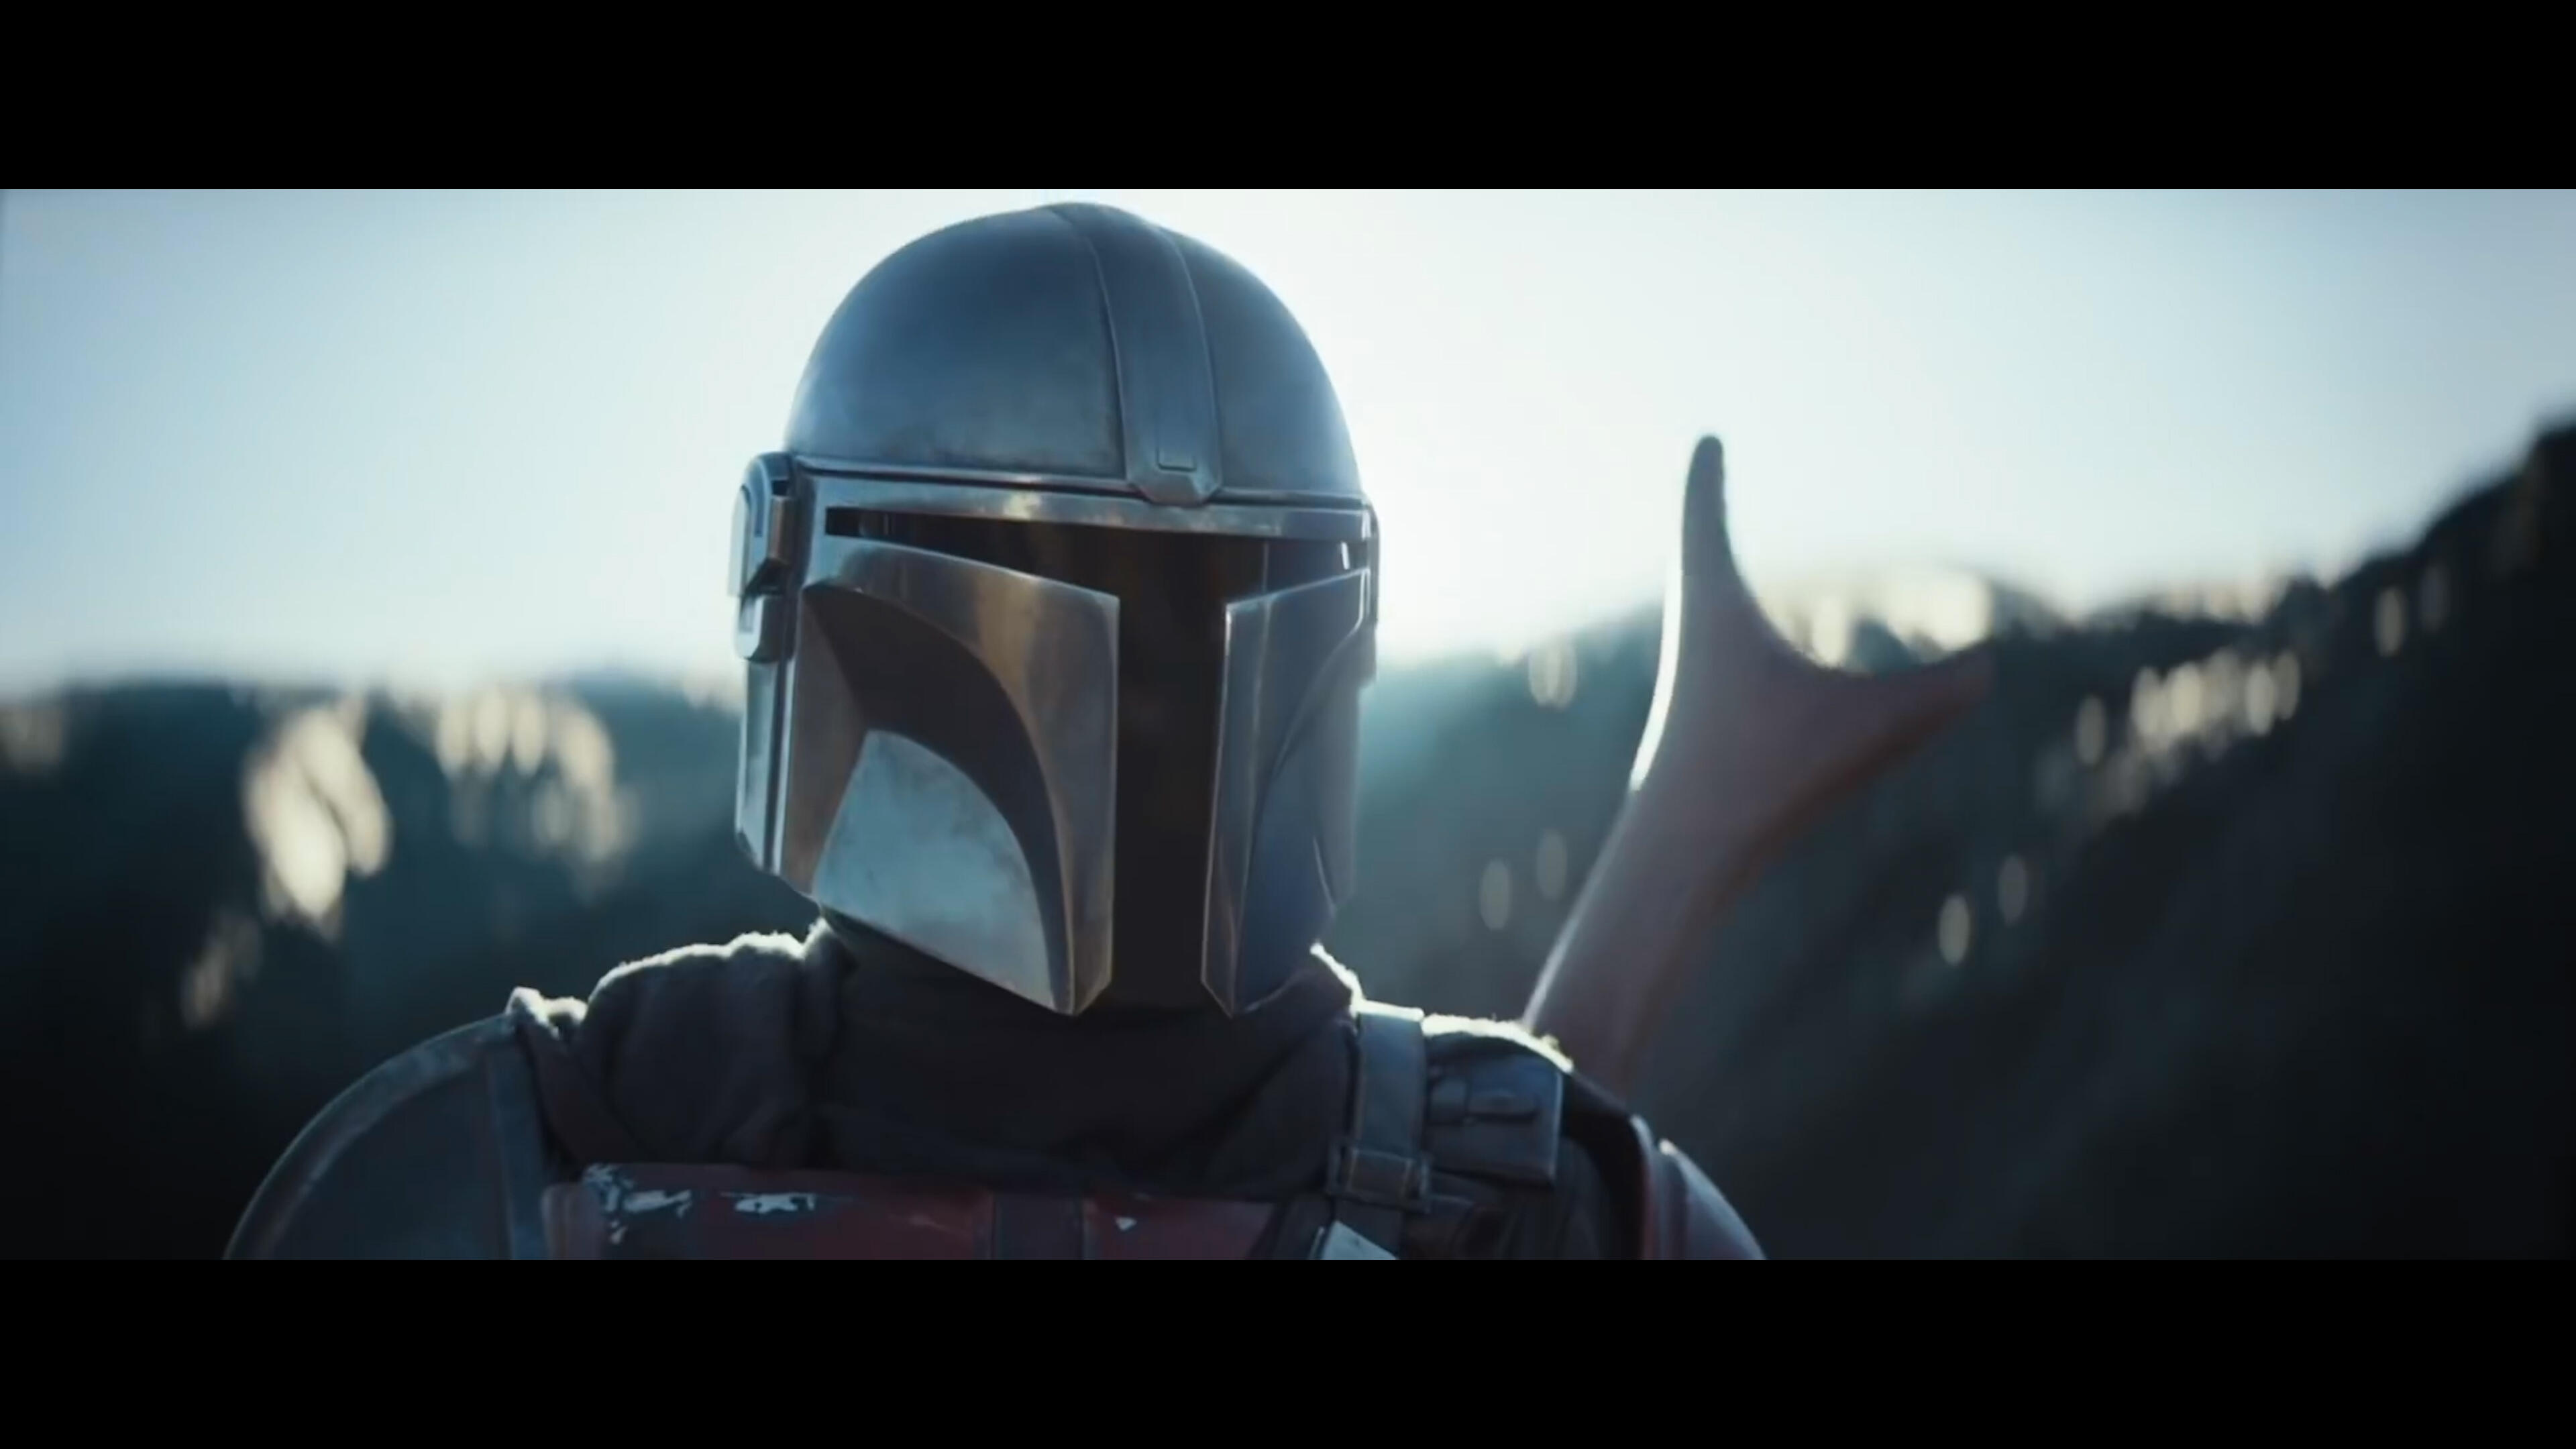 Video: The basics of The Mandalorian